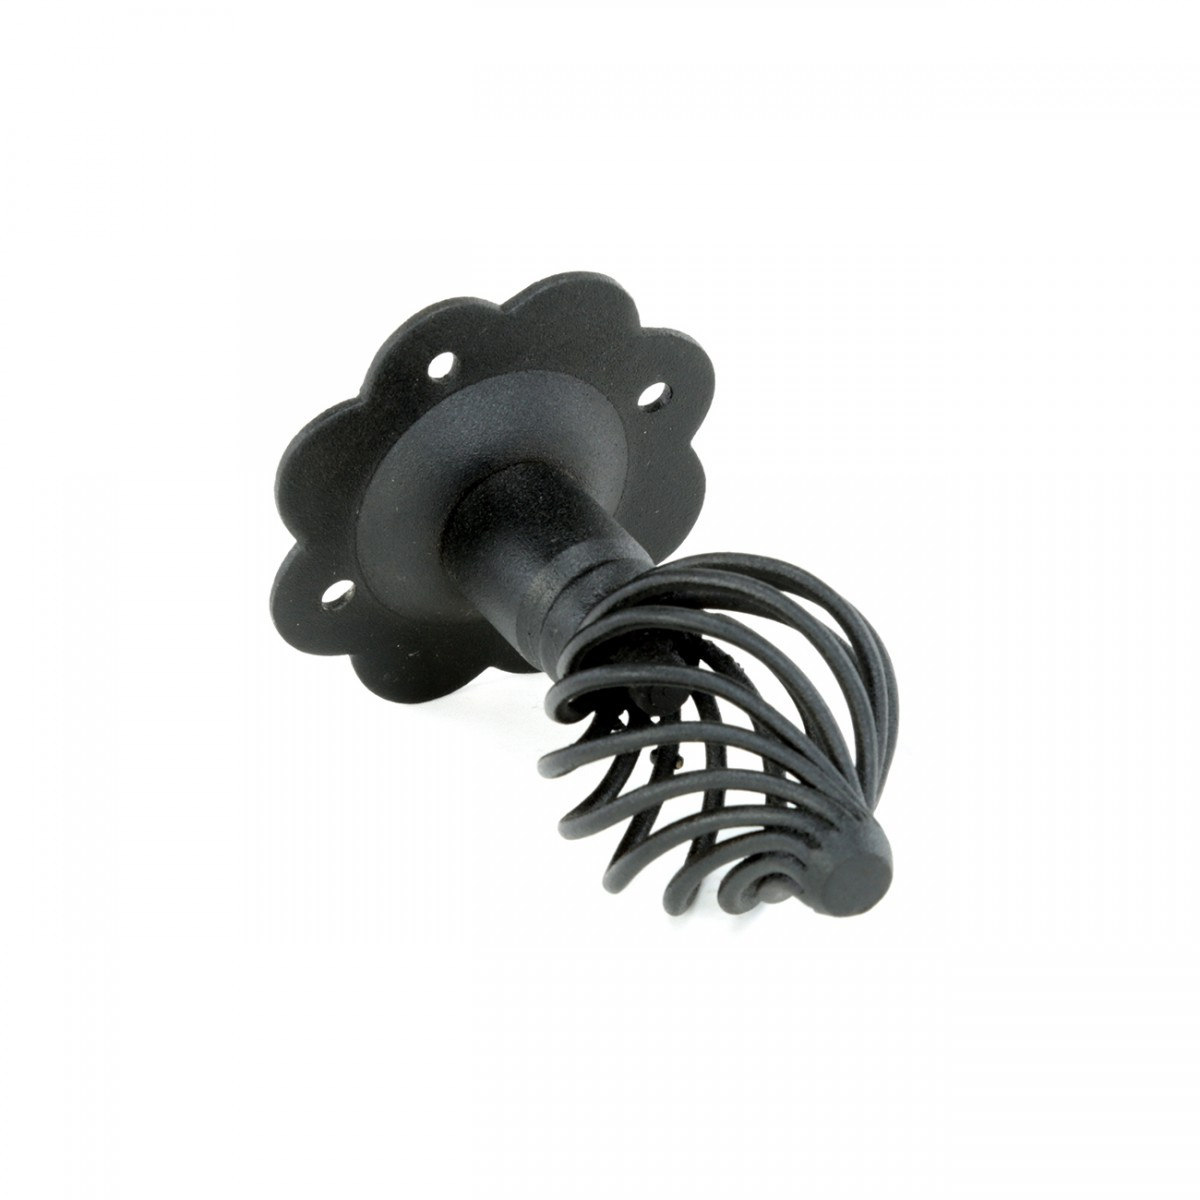 10 Cabinet or Drawer Birdcage Pull Black Iron 4 x 2 12 H Furniture Hardware Cabinet Pull Cabinet Hardware